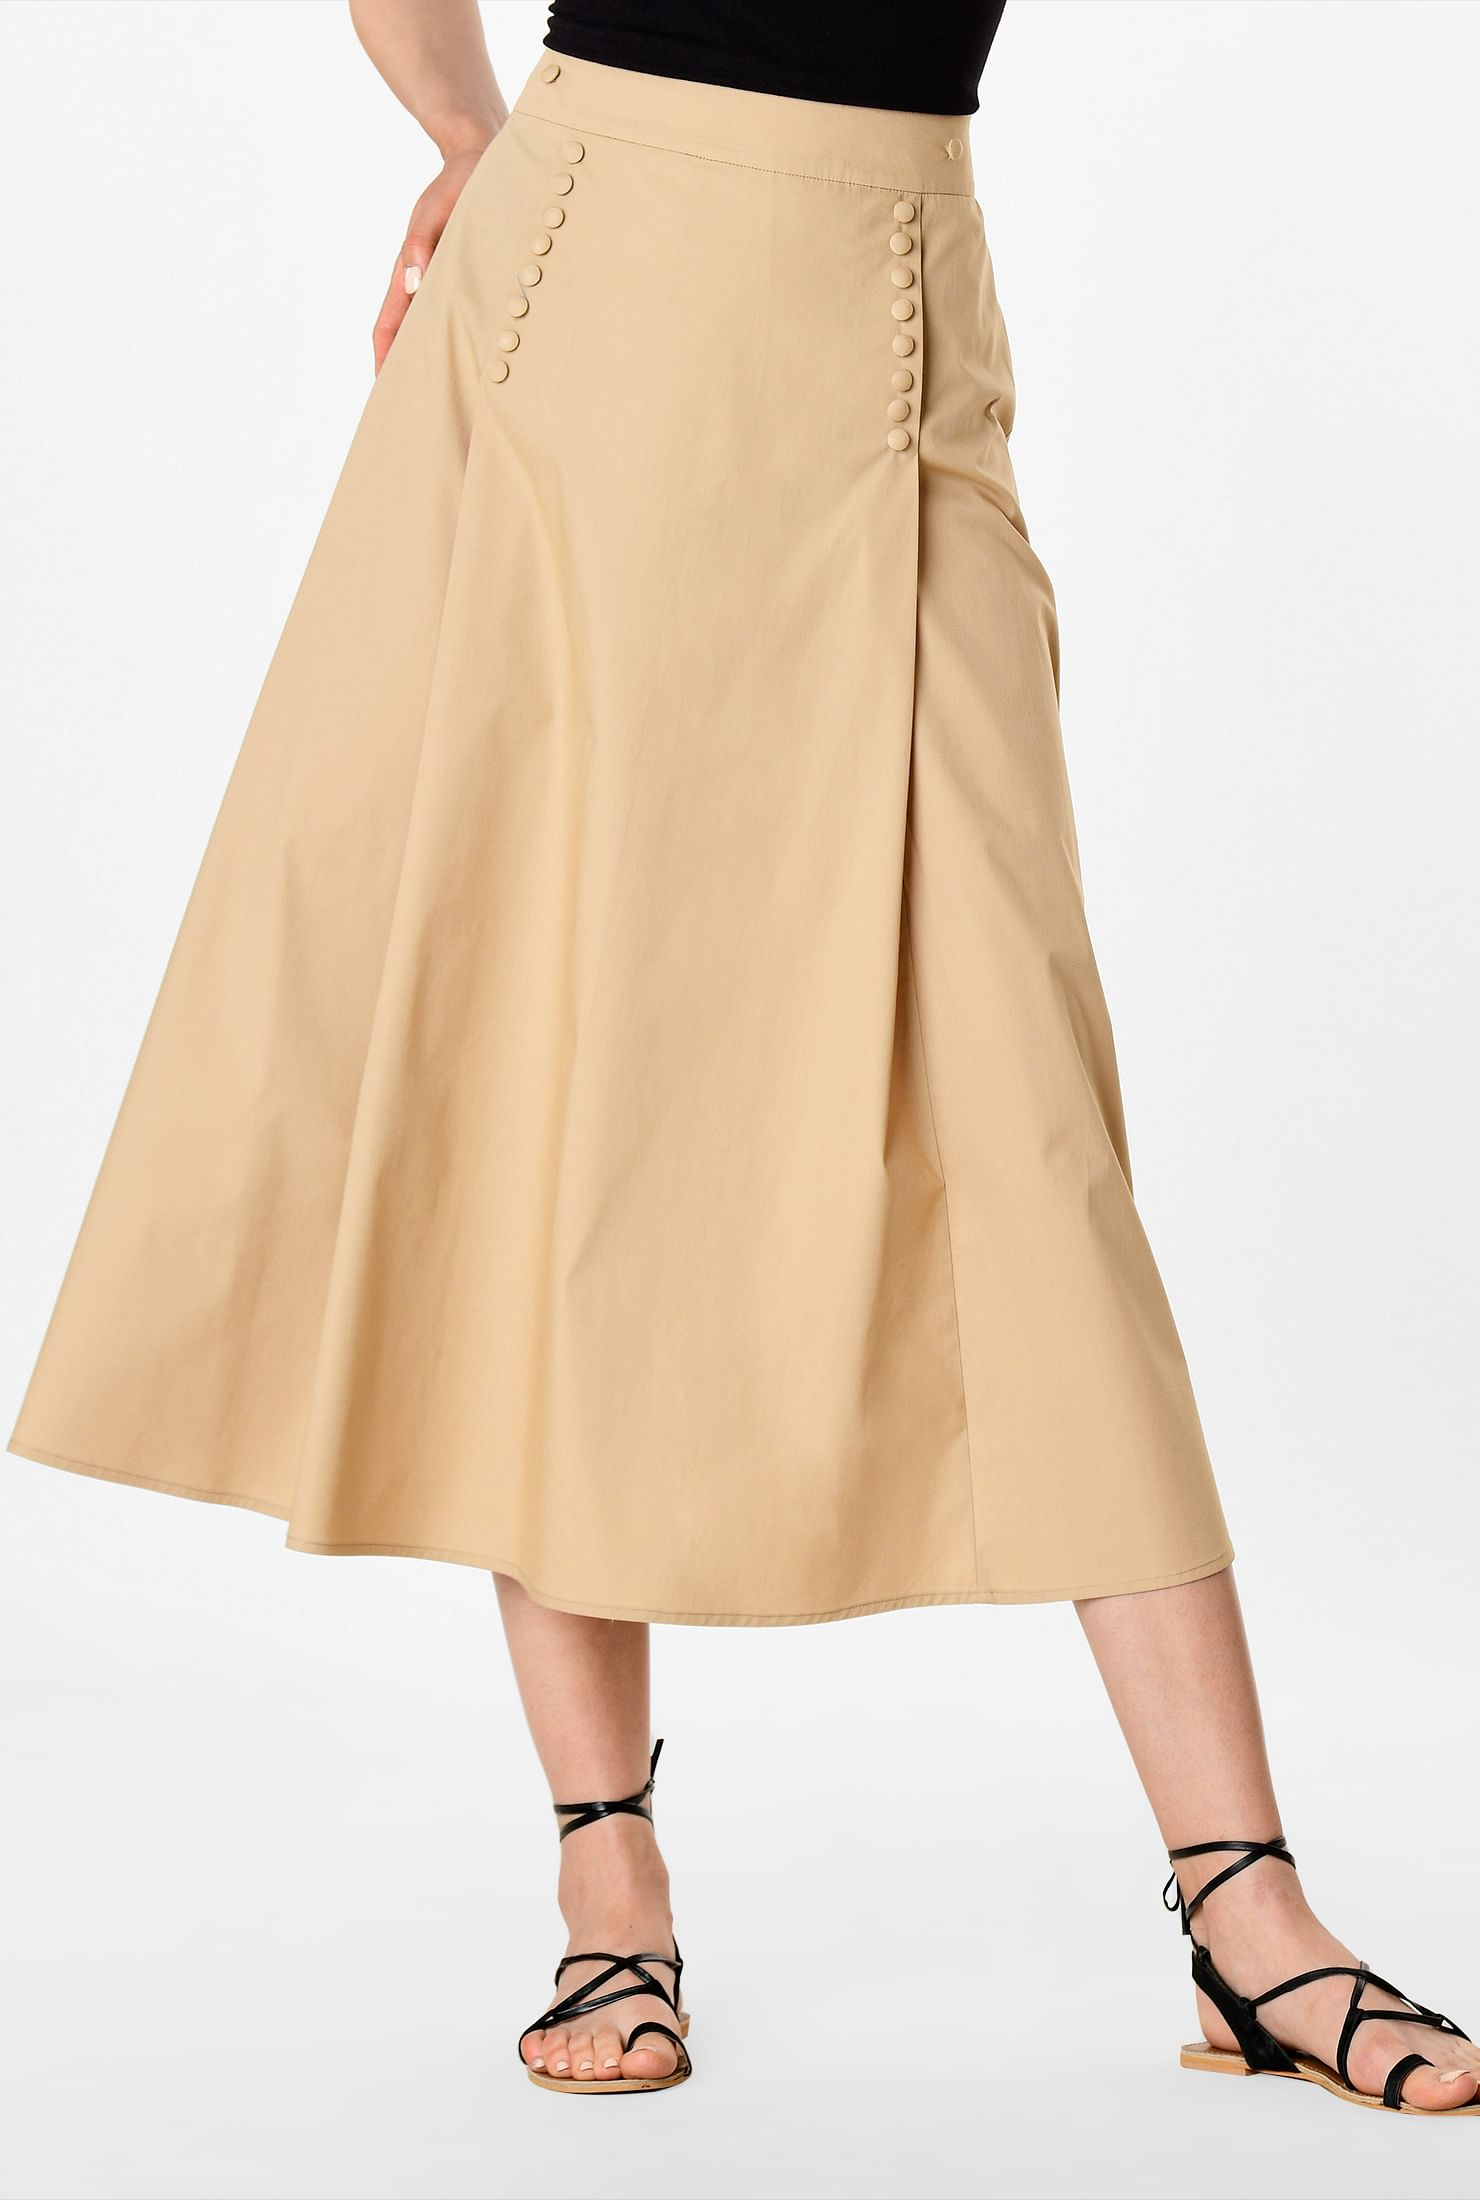 fe7cc65e54 Yellow Chiffon Pleated Maxi Skirt